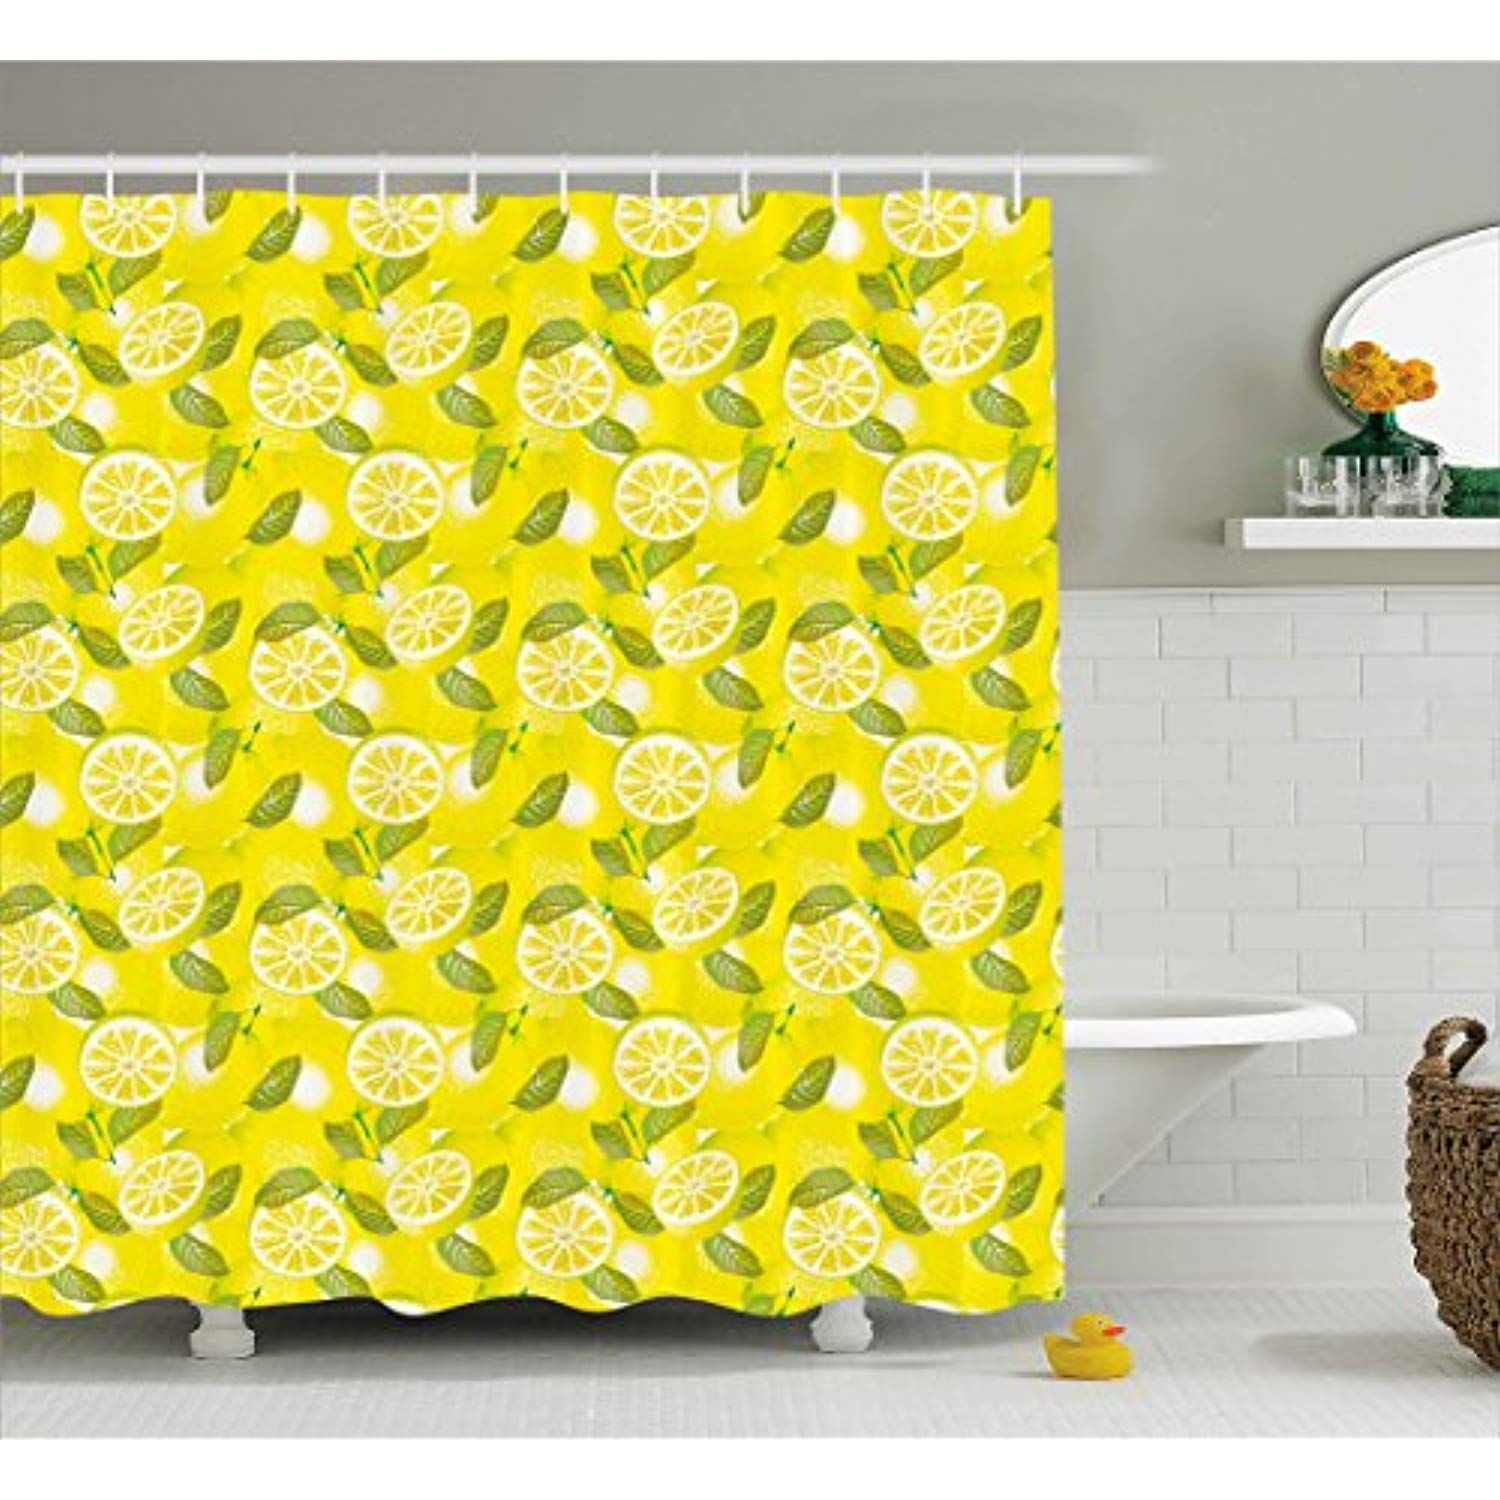 Ambesonne Spring Shower Curtain Fresh Lemon Slices With Leaves